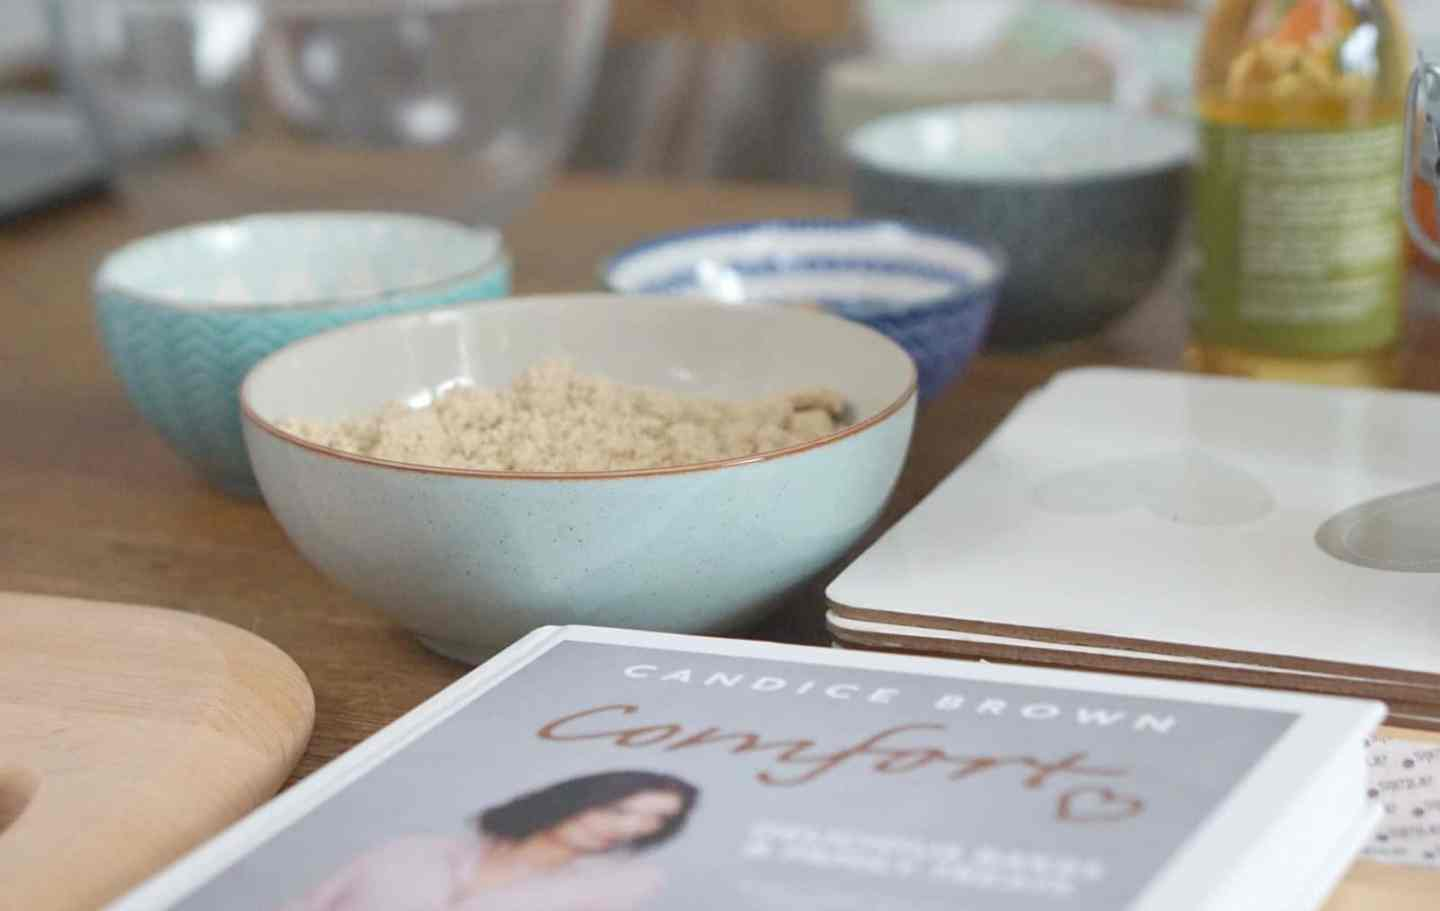 Cooking with Candice Brown www.extraordinarychaos.com